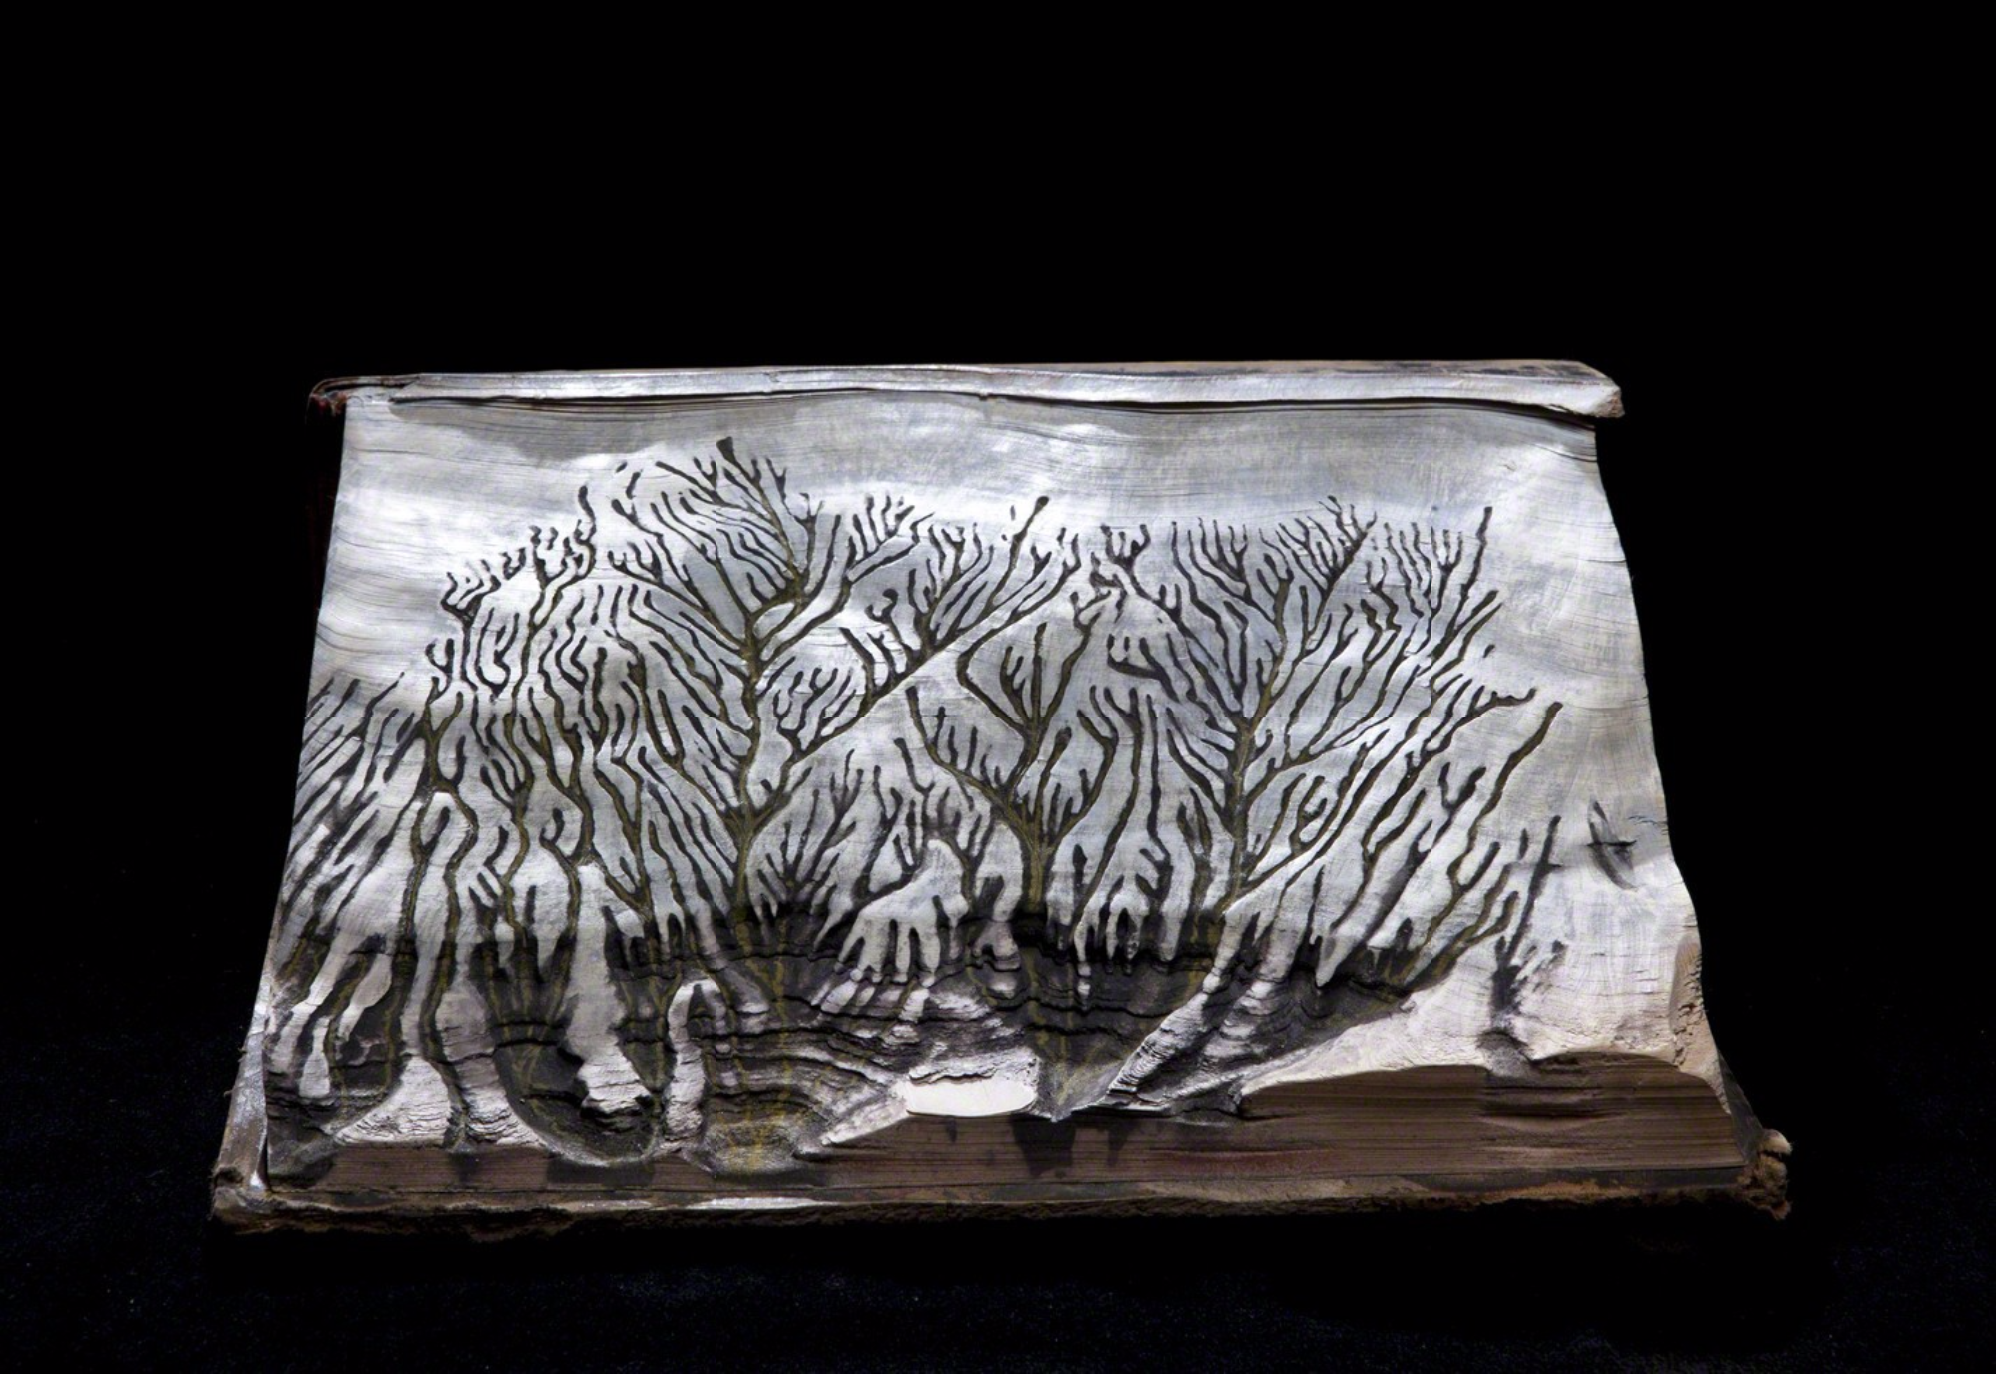 Guy Laramee Creates Hyperrealistic Topographic Landscapes Carved into Old Books - Le Debut